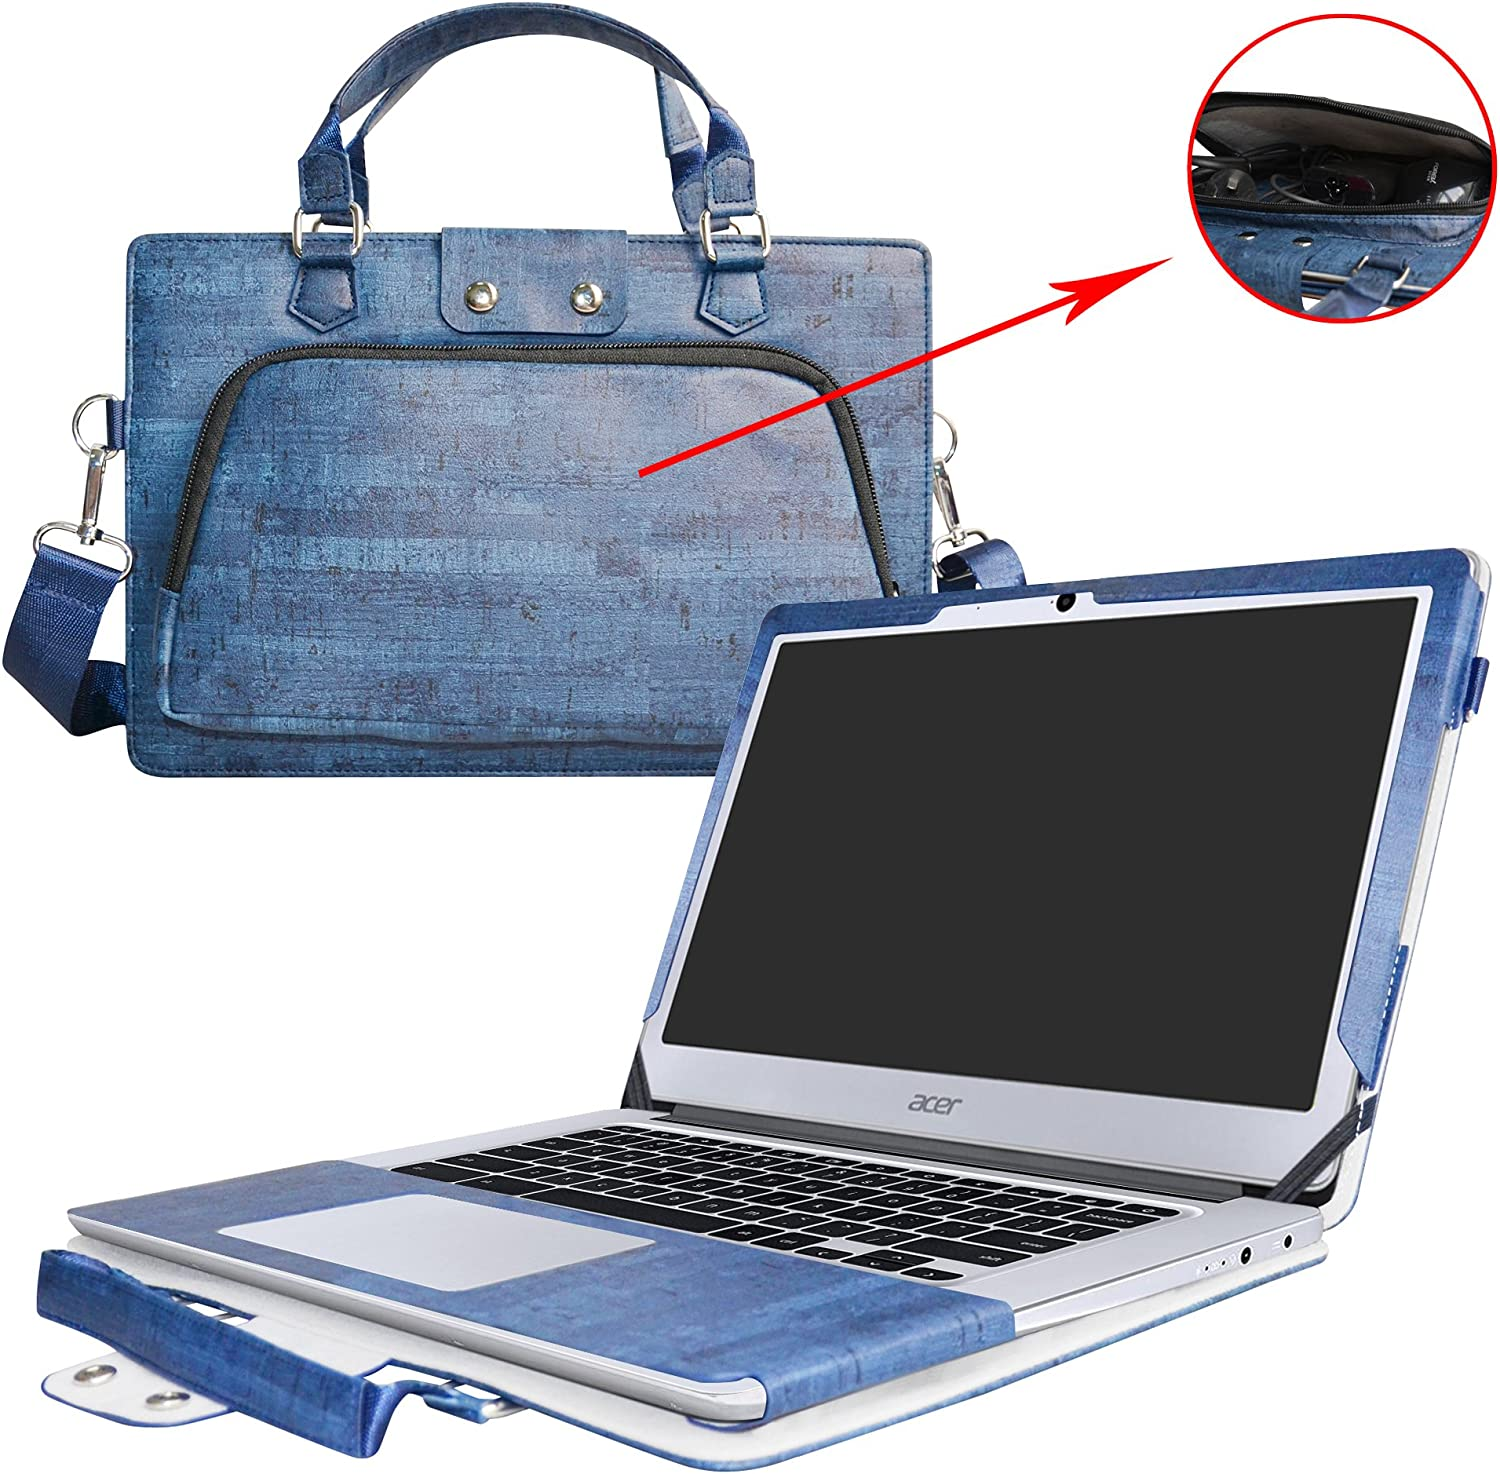 """Acer Chromebook 14 Case,2 in 1 Accurately Designed Protective PU Leather Cover + Portable Carrying Bag for 14"""" Acer Chromebook 14 CB3-431 Series Laptop(Not fit CP5-471 Series),Blue"""